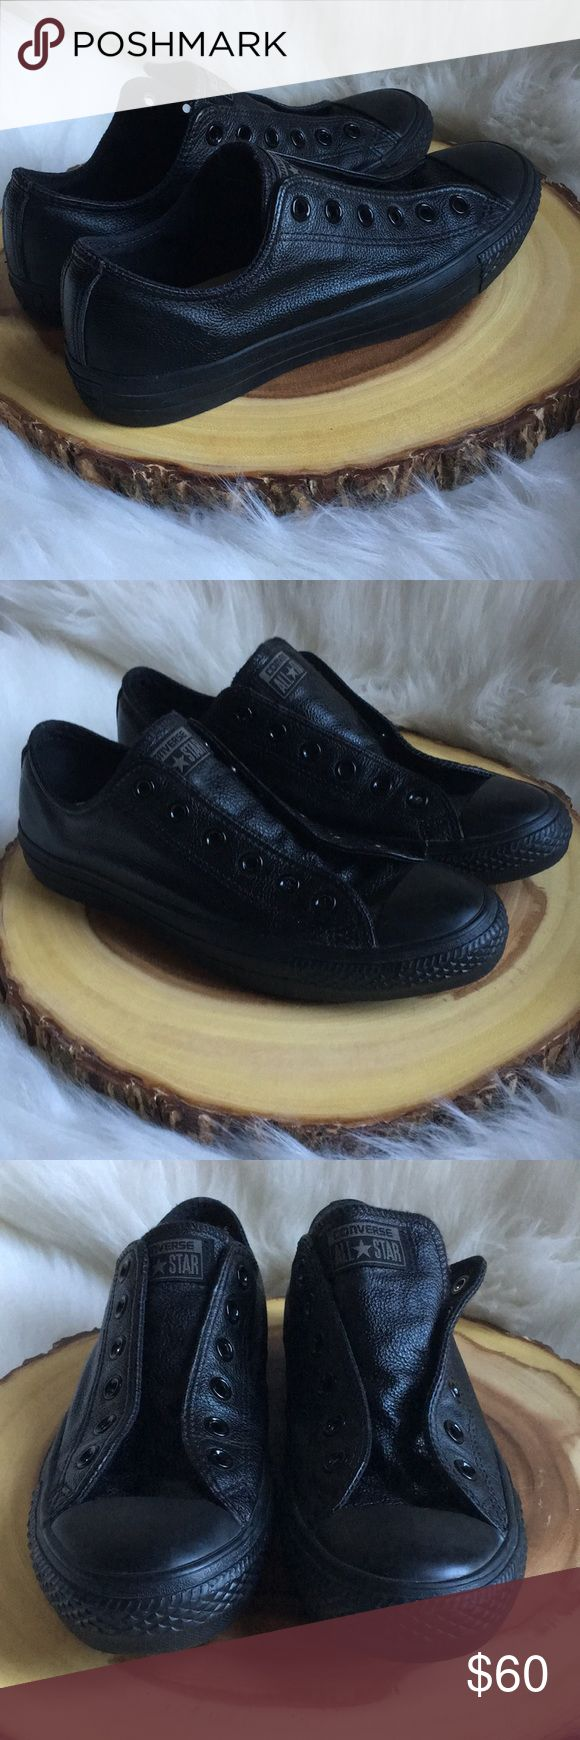 Leather converse sneakers These genuine leather converse are like new! Without the laces 🙈. Laces are very cheap! Converse Shoes Sneakers